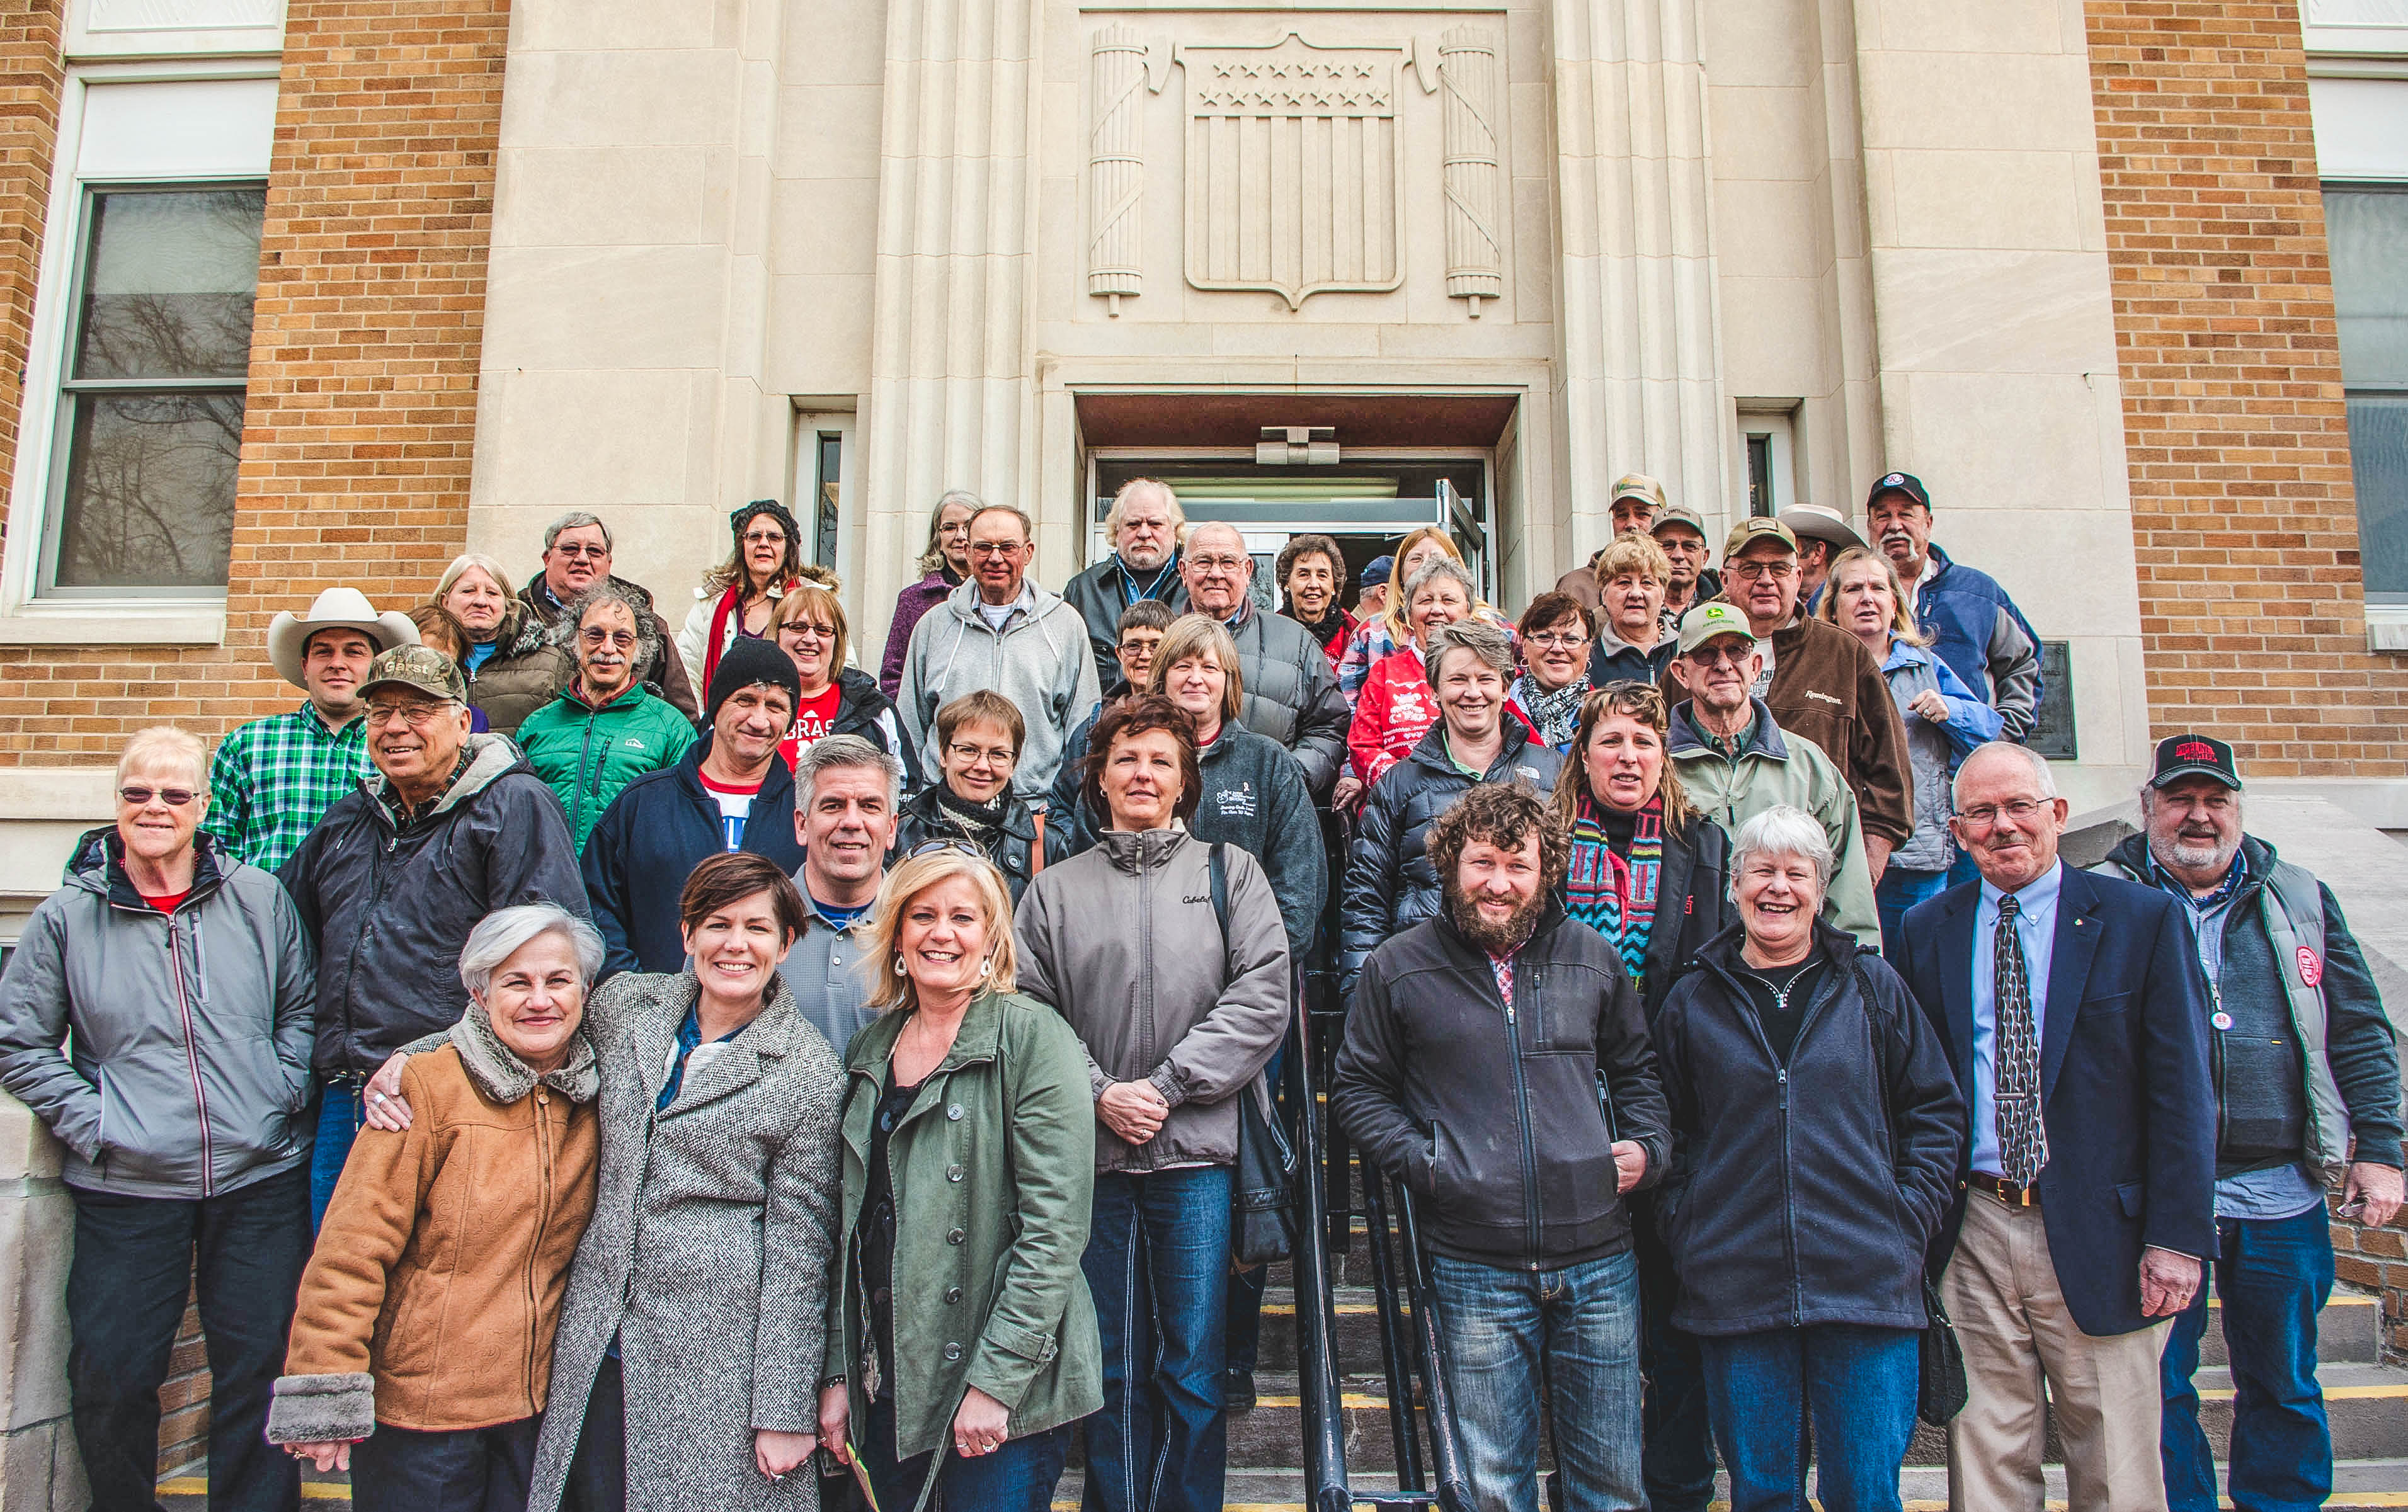 Pipeline fighters group photo in front of courthouse.